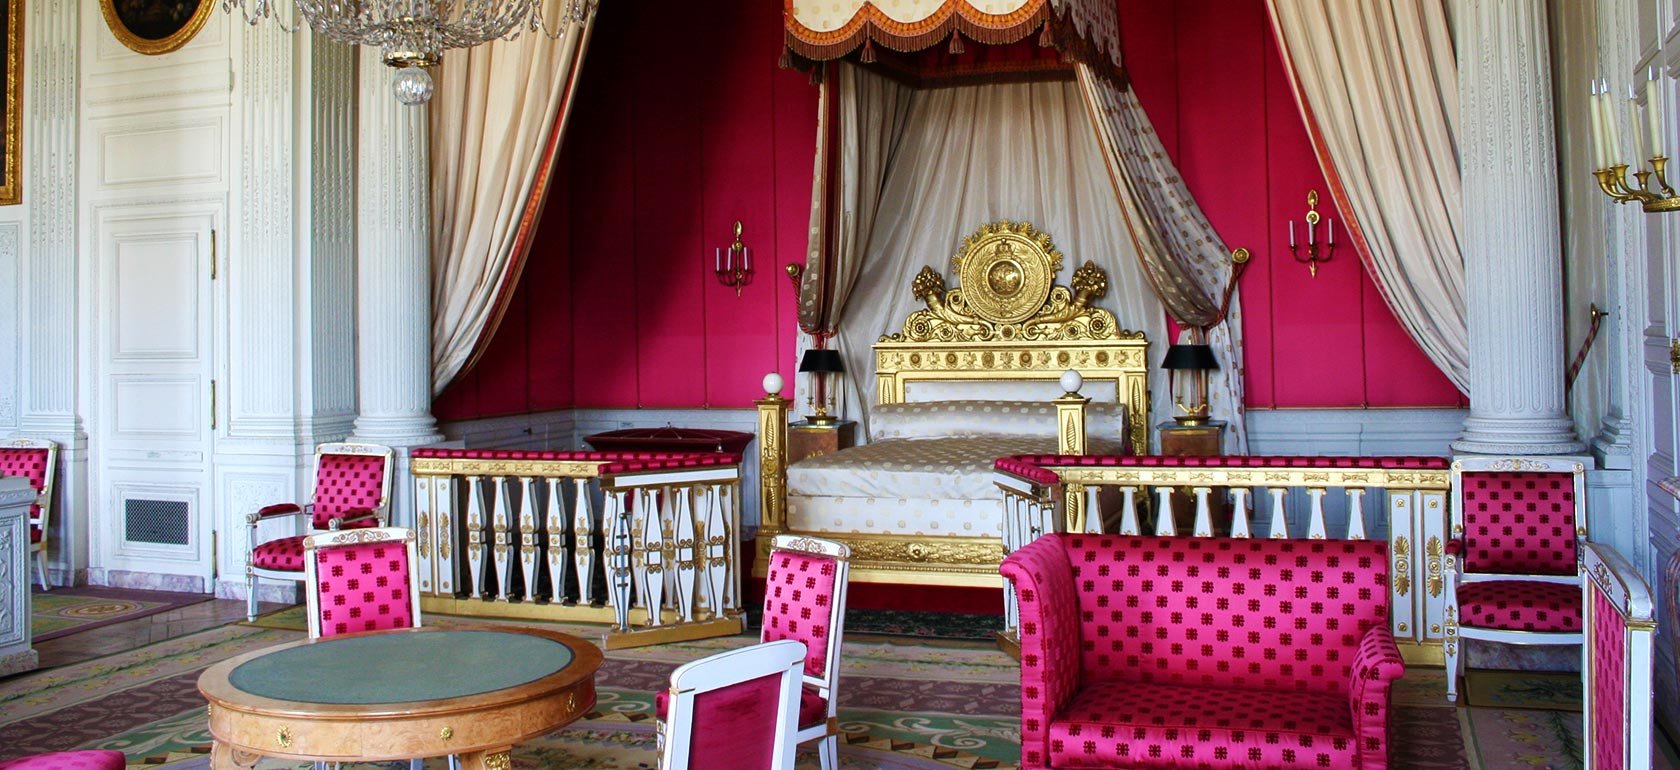 versailles palace all areas entrance audioguide. Black Bedroom Furniture Sets. Home Design Ideas